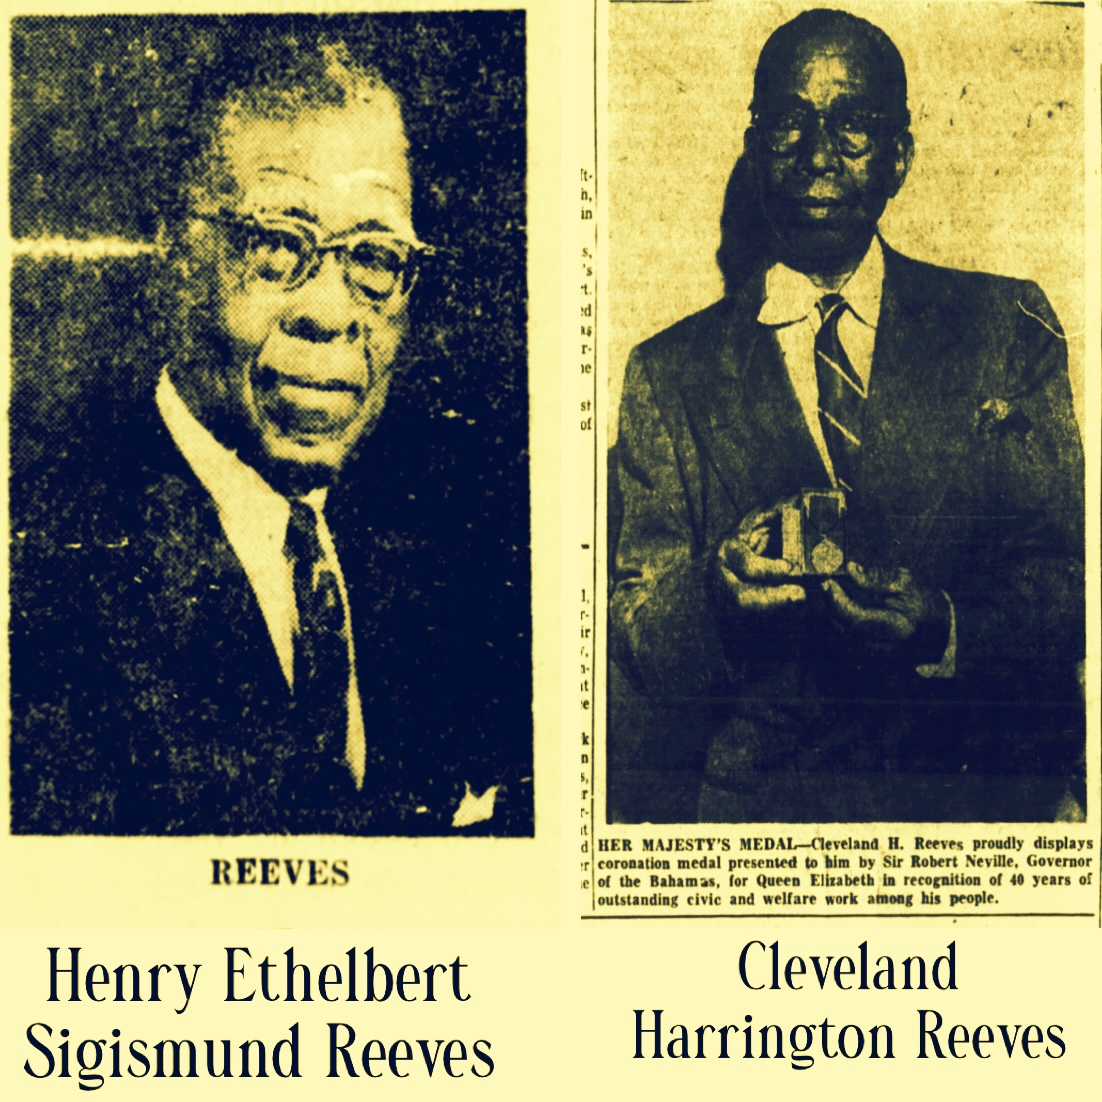 Accomplished Brothers Henry Ethelbert Sigismund Reeves and Cleveland Harrington Reeves 1919